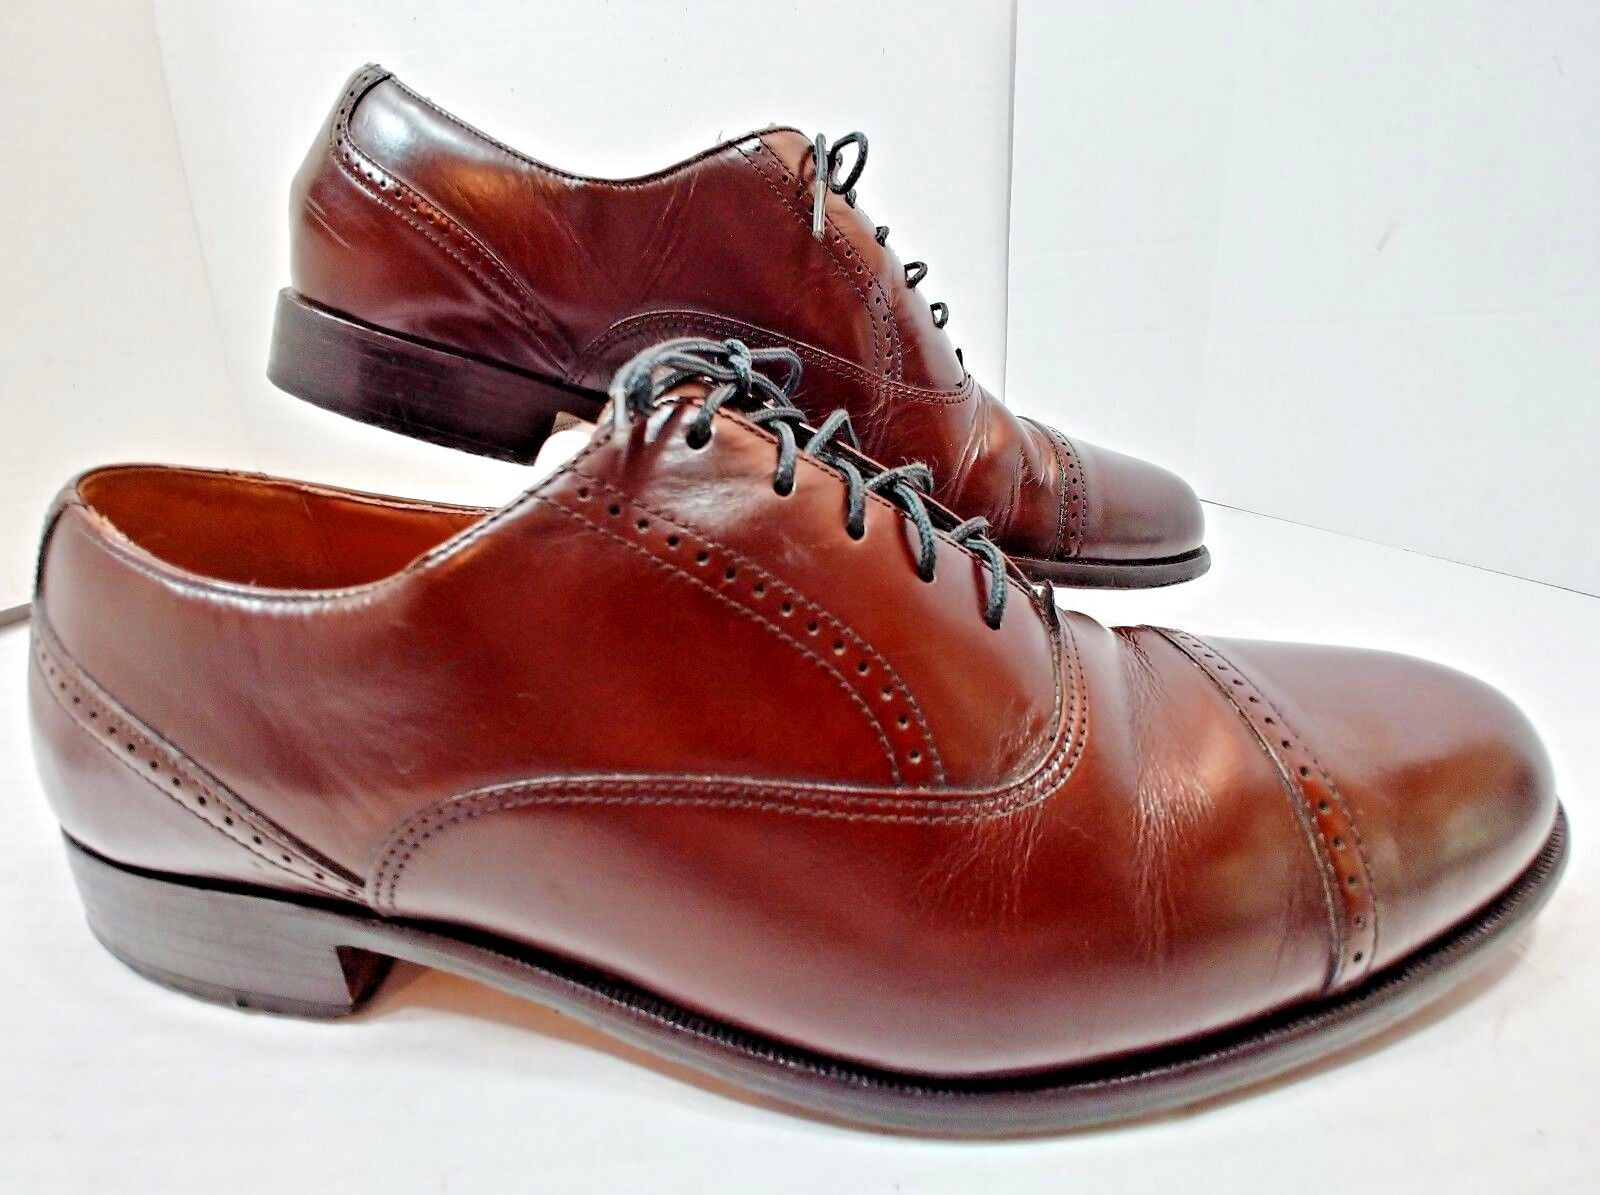 Bostonian Burgundy Cordovan Leather Oxford Lace Up Cap Toe Dress shoes Mens 10 M